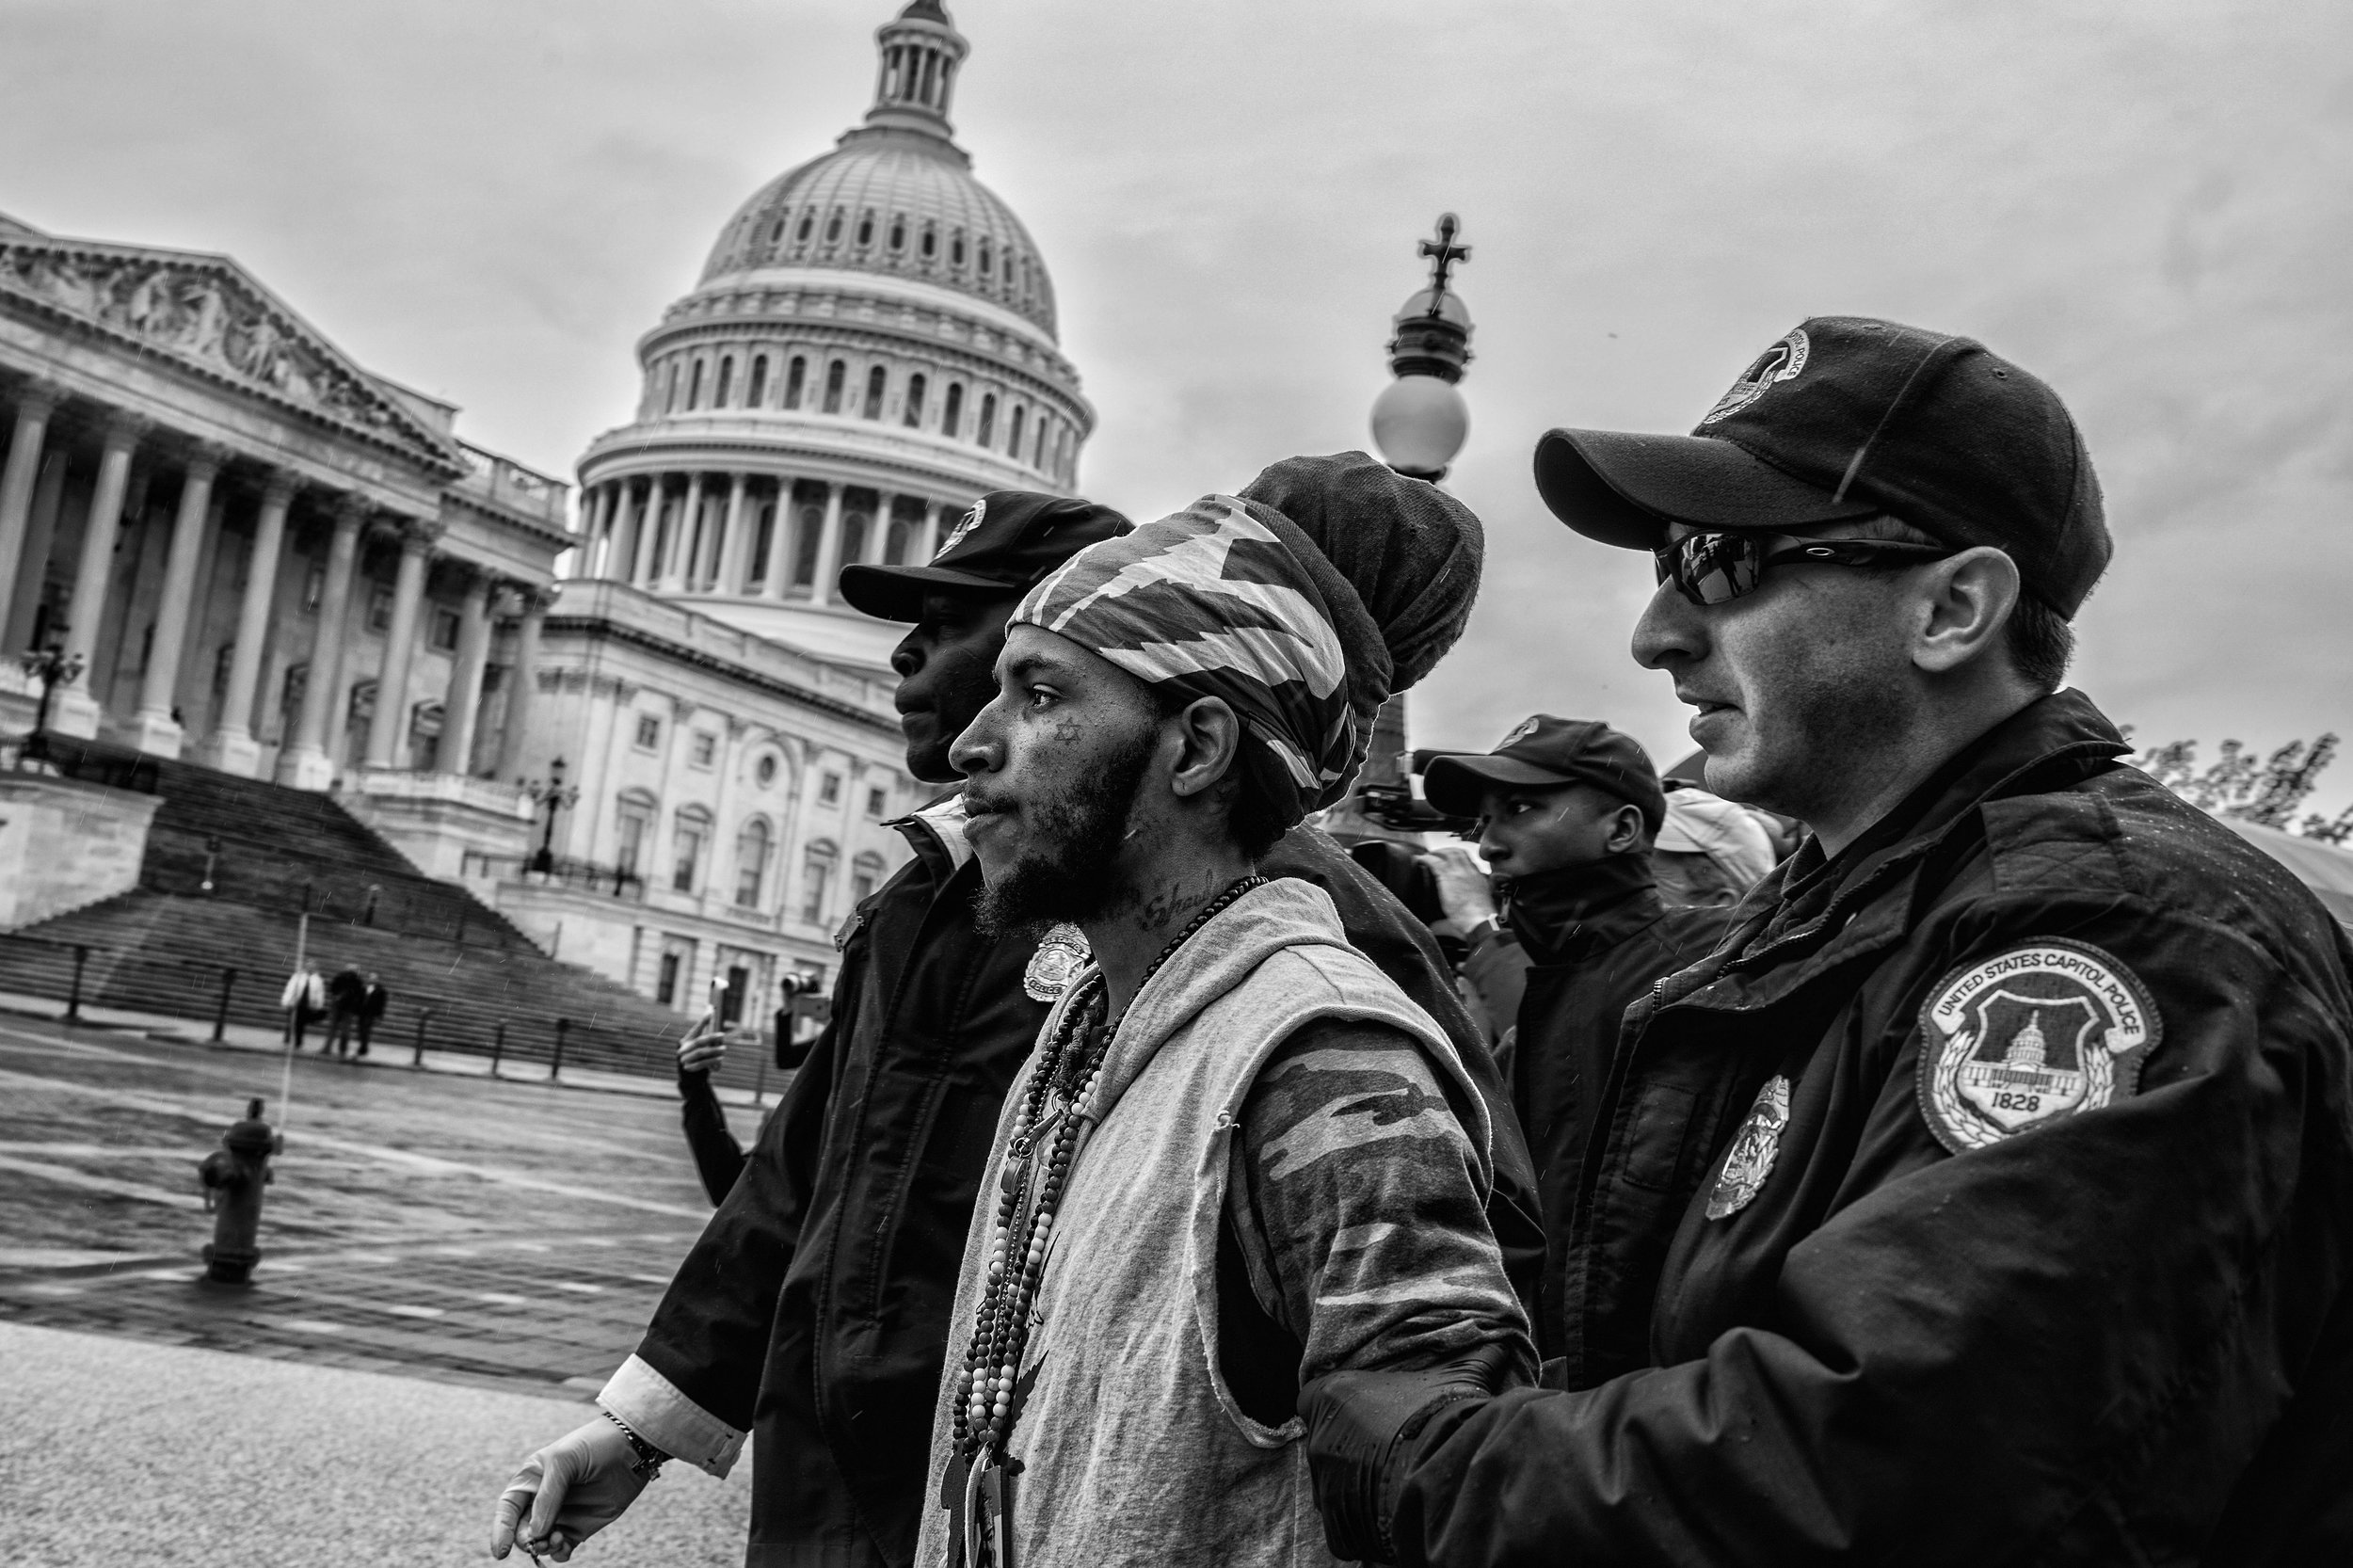 Day 95 : Jerome Waite known as Rasfia is arrested after lighting a marijuana joint at a pro-cannabis rally on Capitol Hill on April 24, 2017.